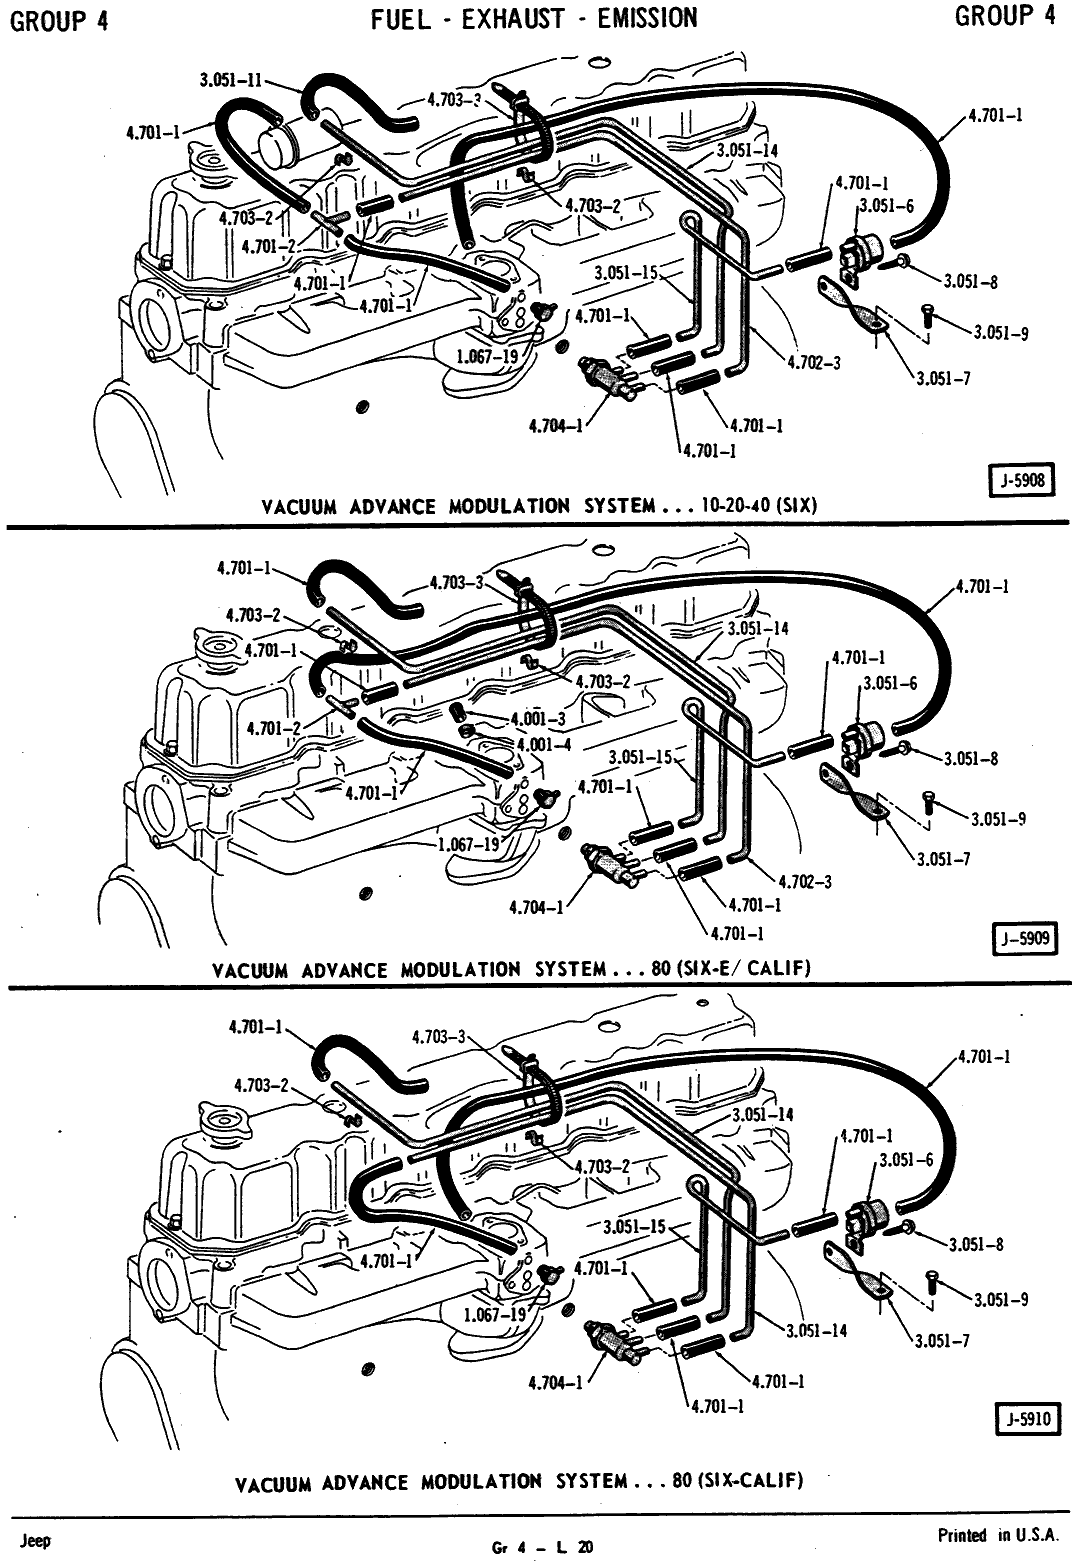 hight resolution of 2000 jeep grand cherokee vacuum diagram wiring diagram expert jeep commander vacuum line diagram 1992 jeep